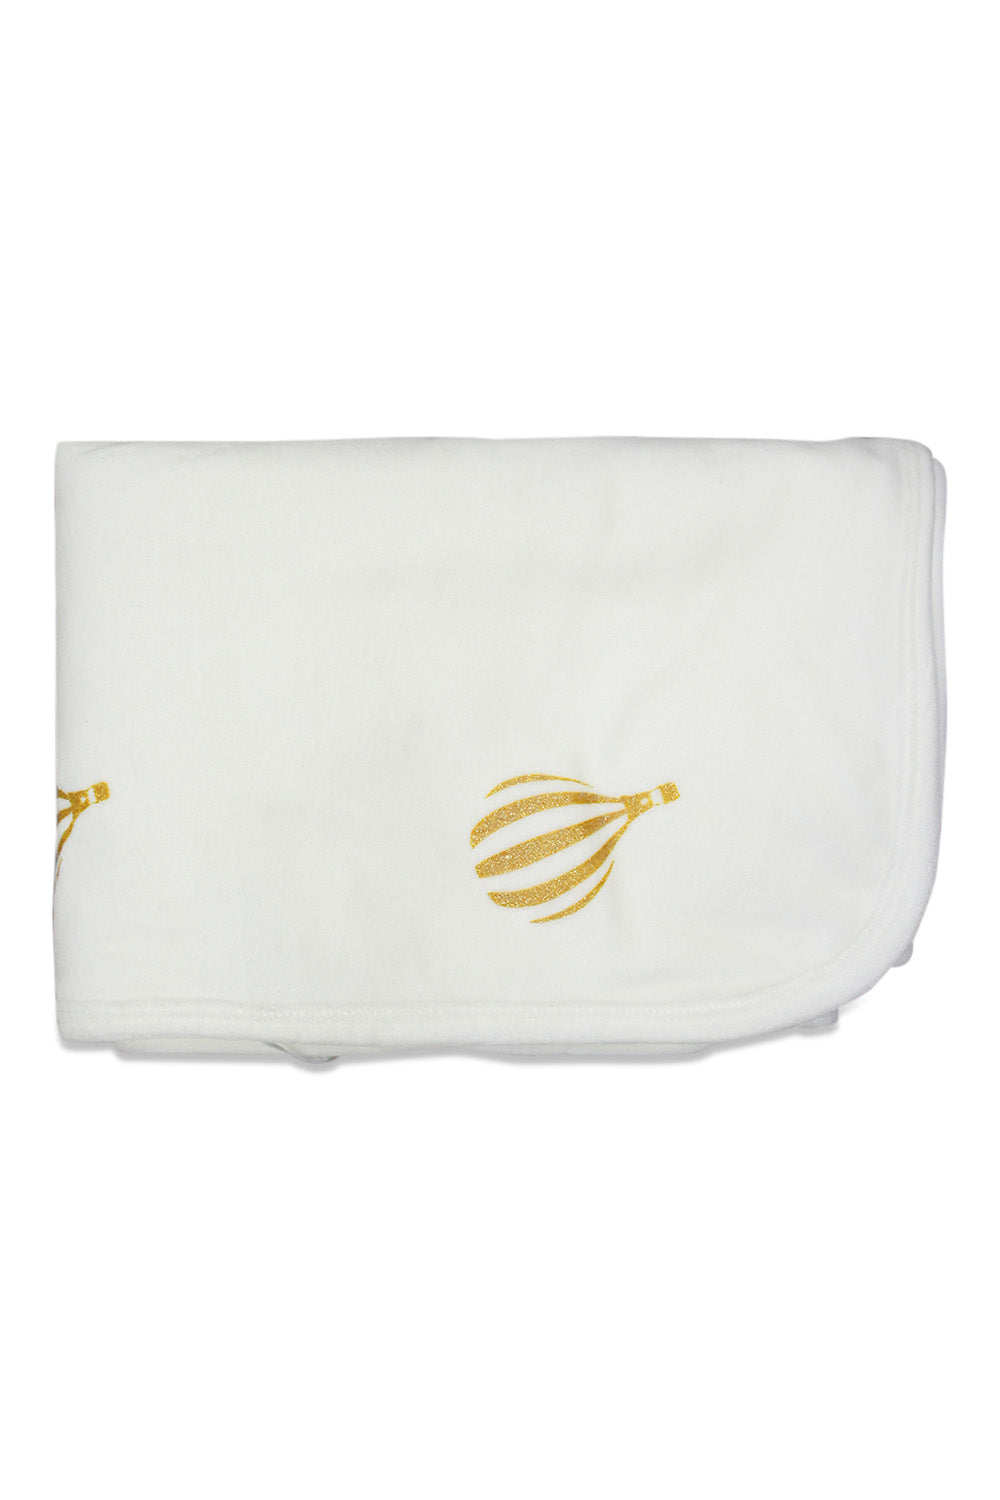 Chant De Joie Ivory With Gold Blanket